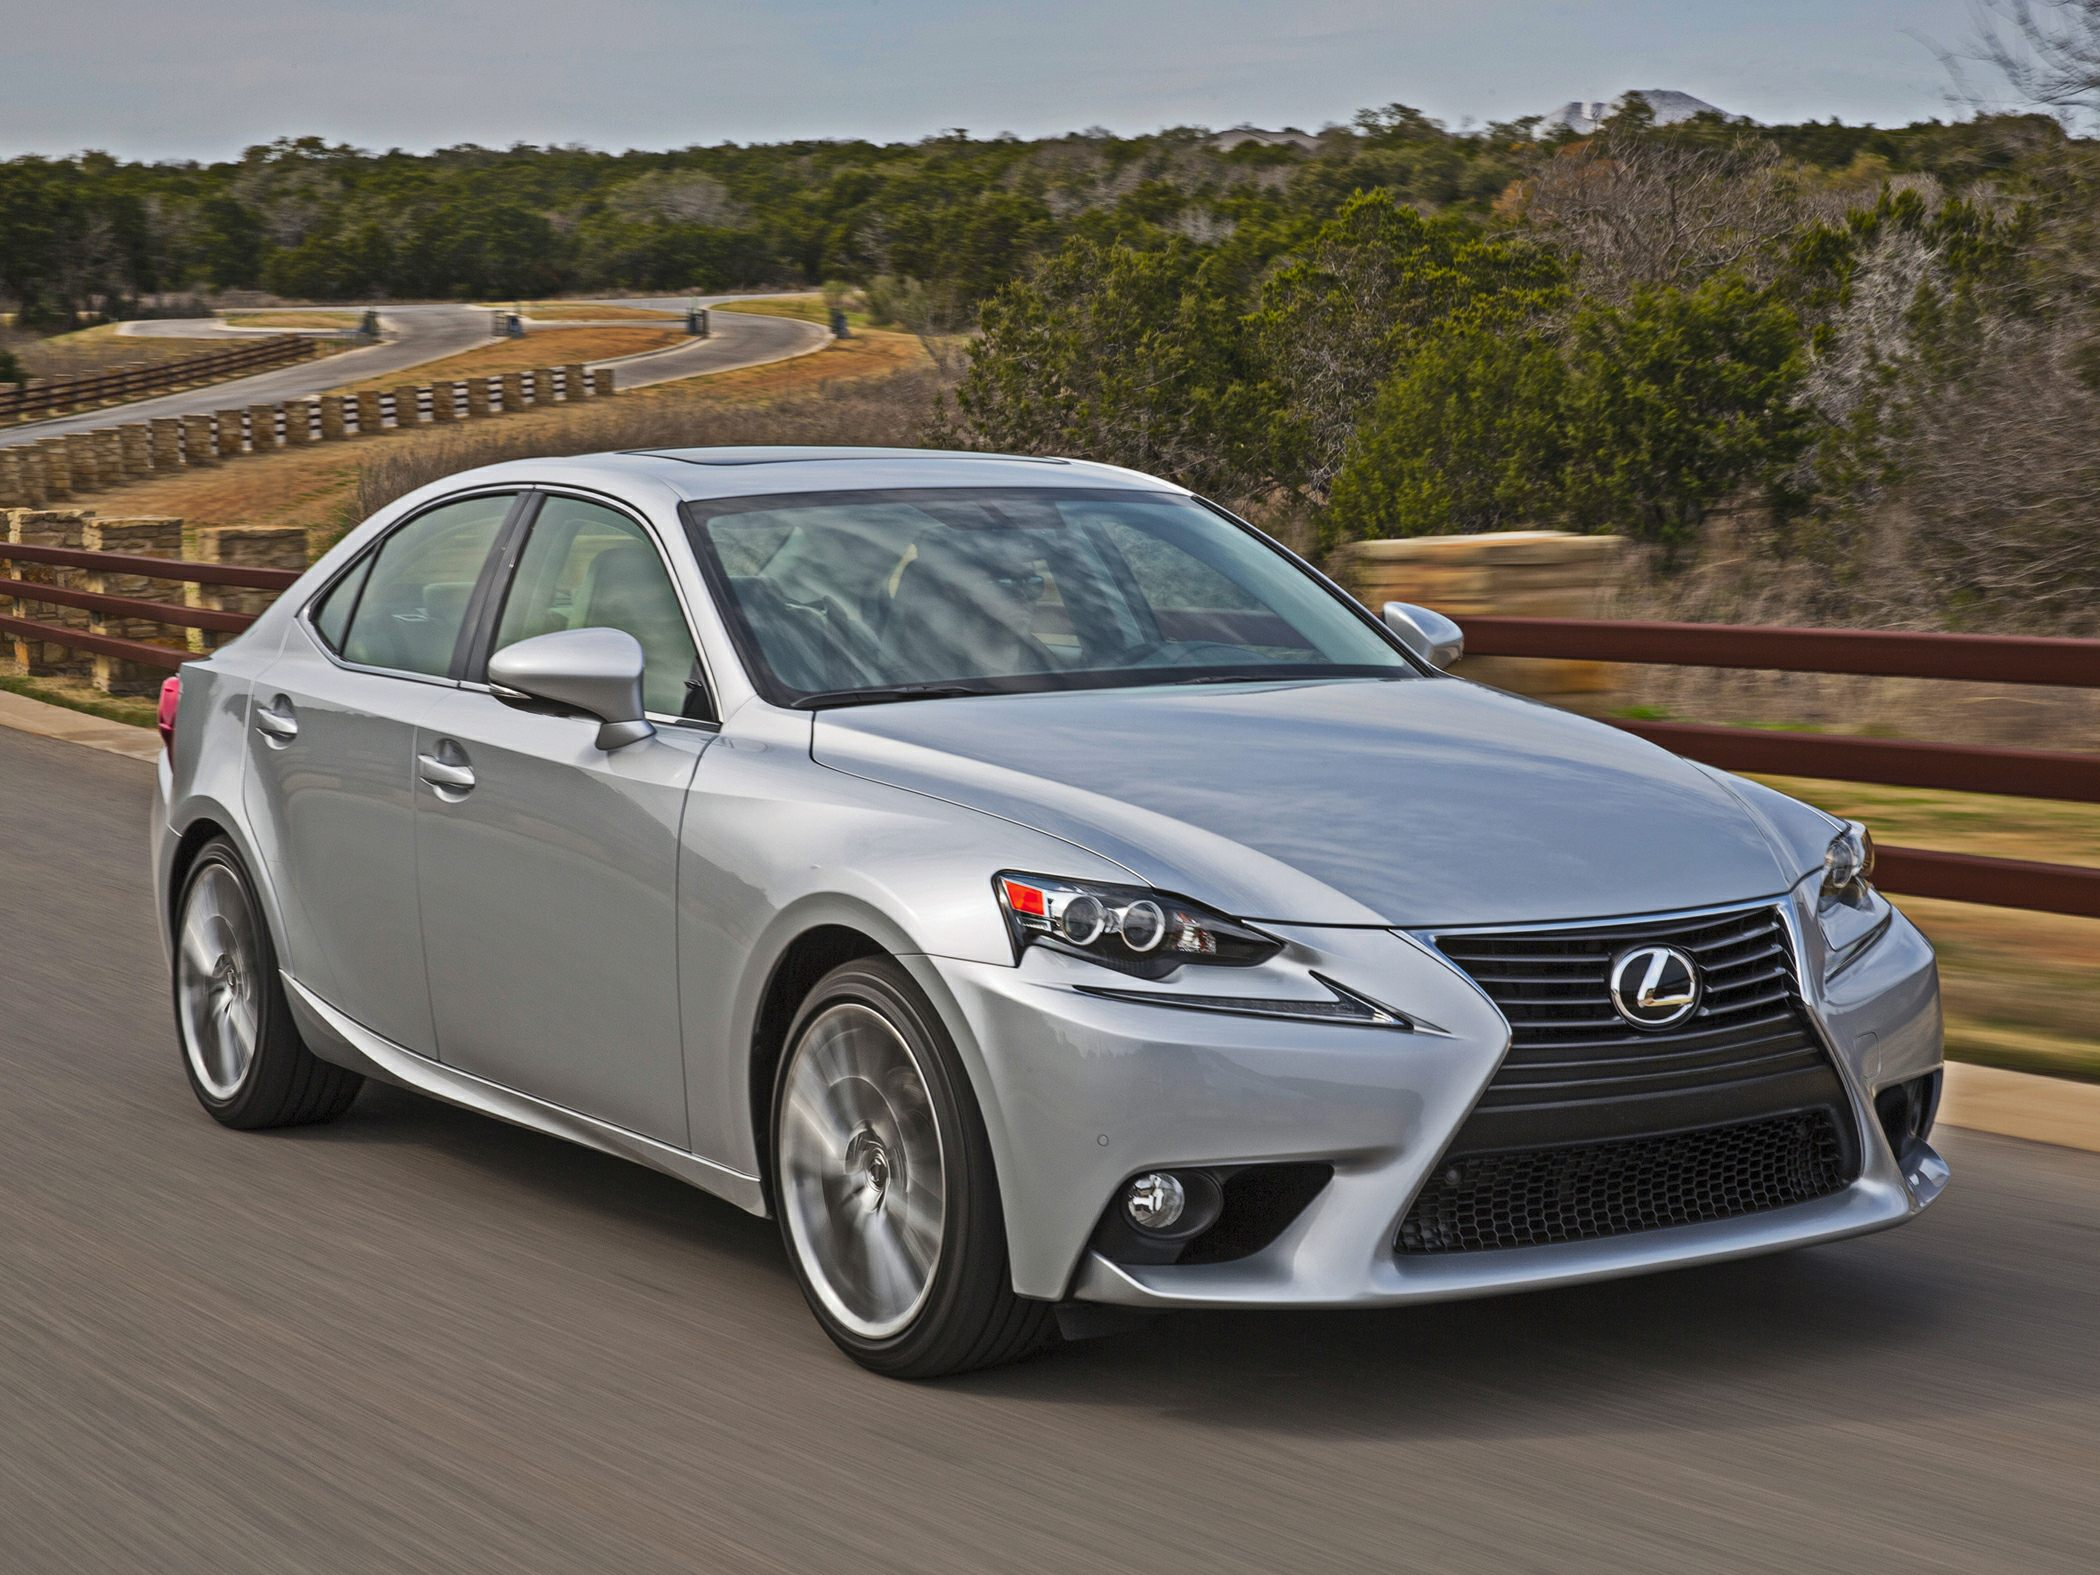 2014 Lexus IS 250 Glamour Exterior